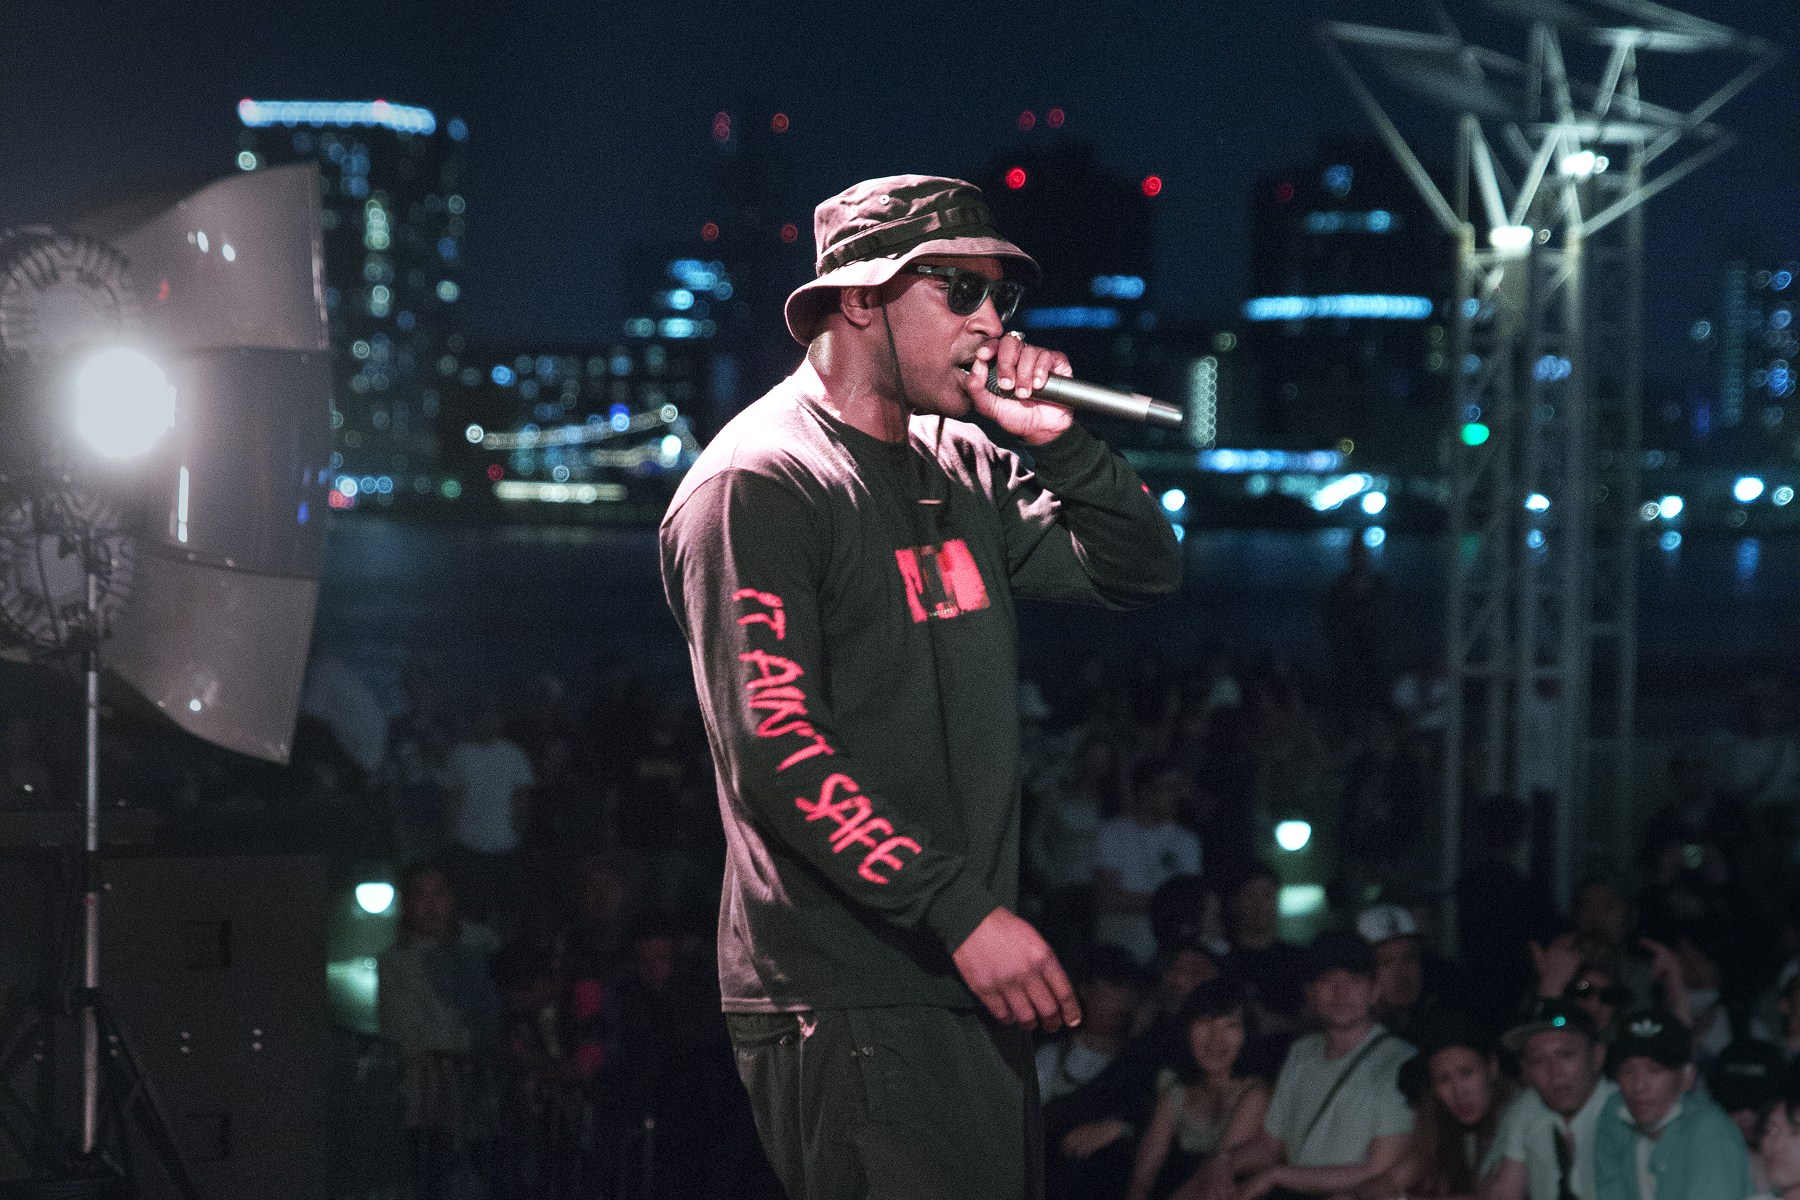 Skepta's Boiler Room Performance for 'Konnichiwa' Album Launch Was Legendary